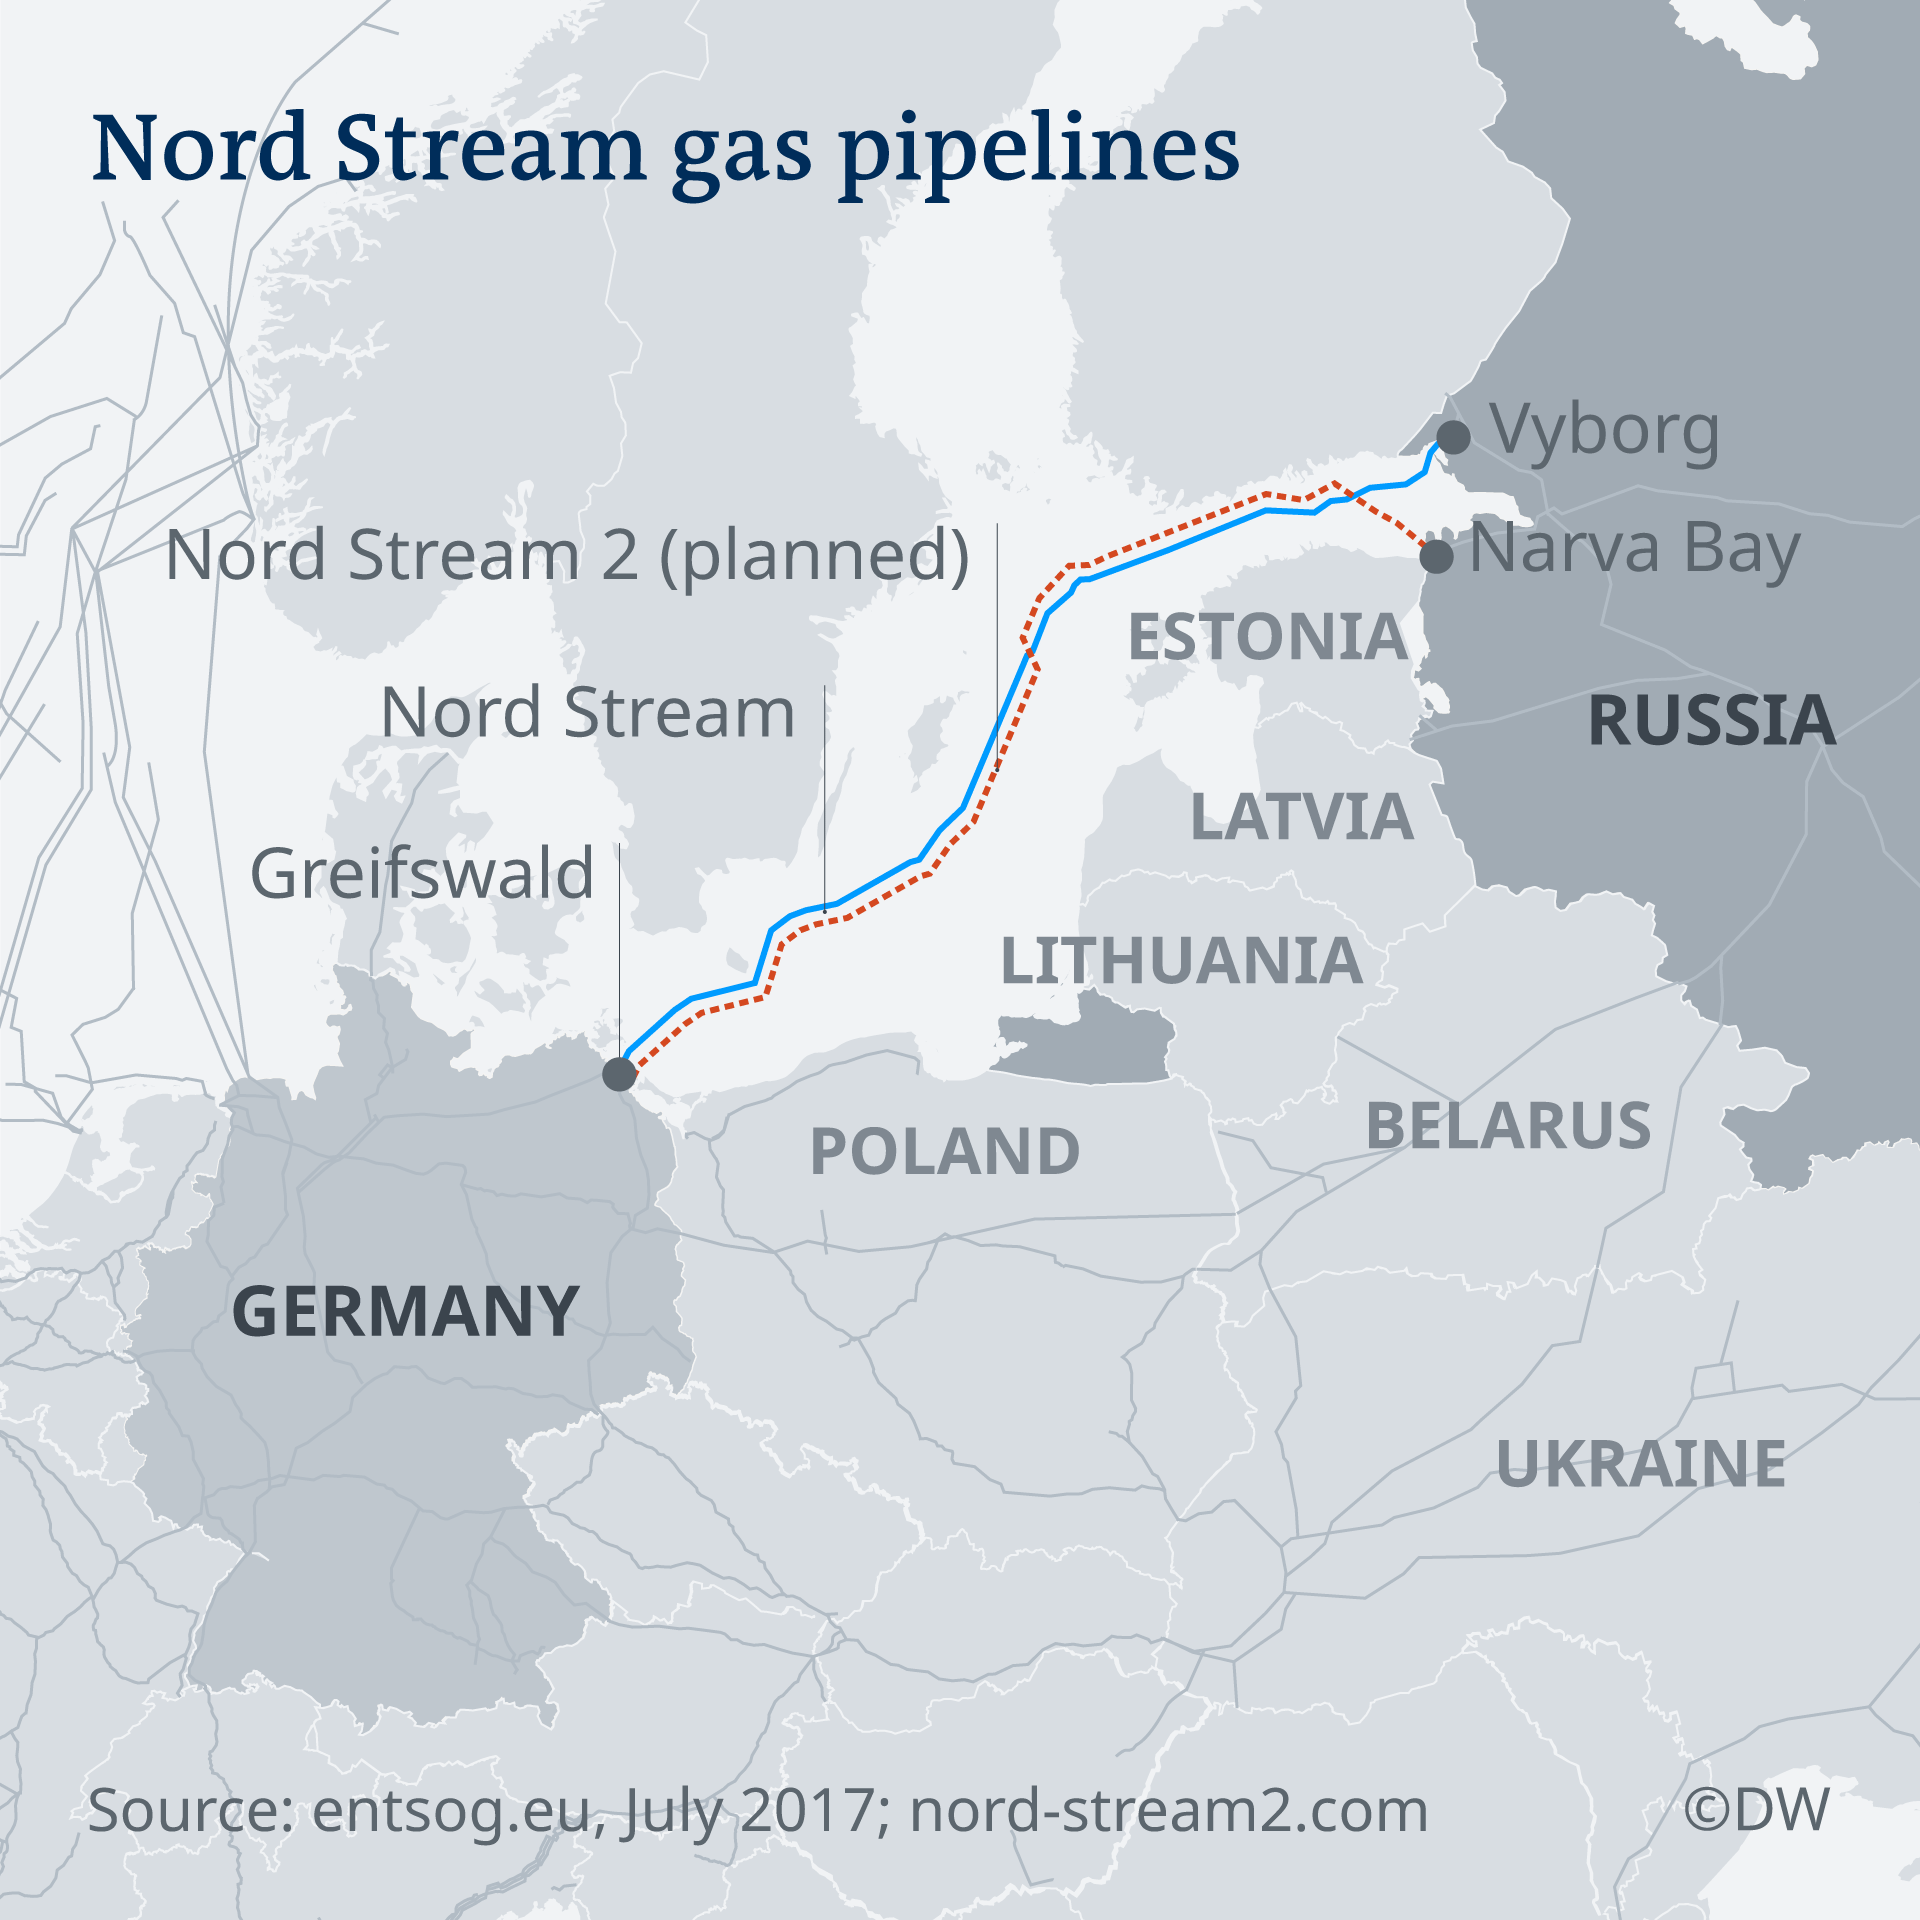 A map of the Nord Stream 2 pipeline